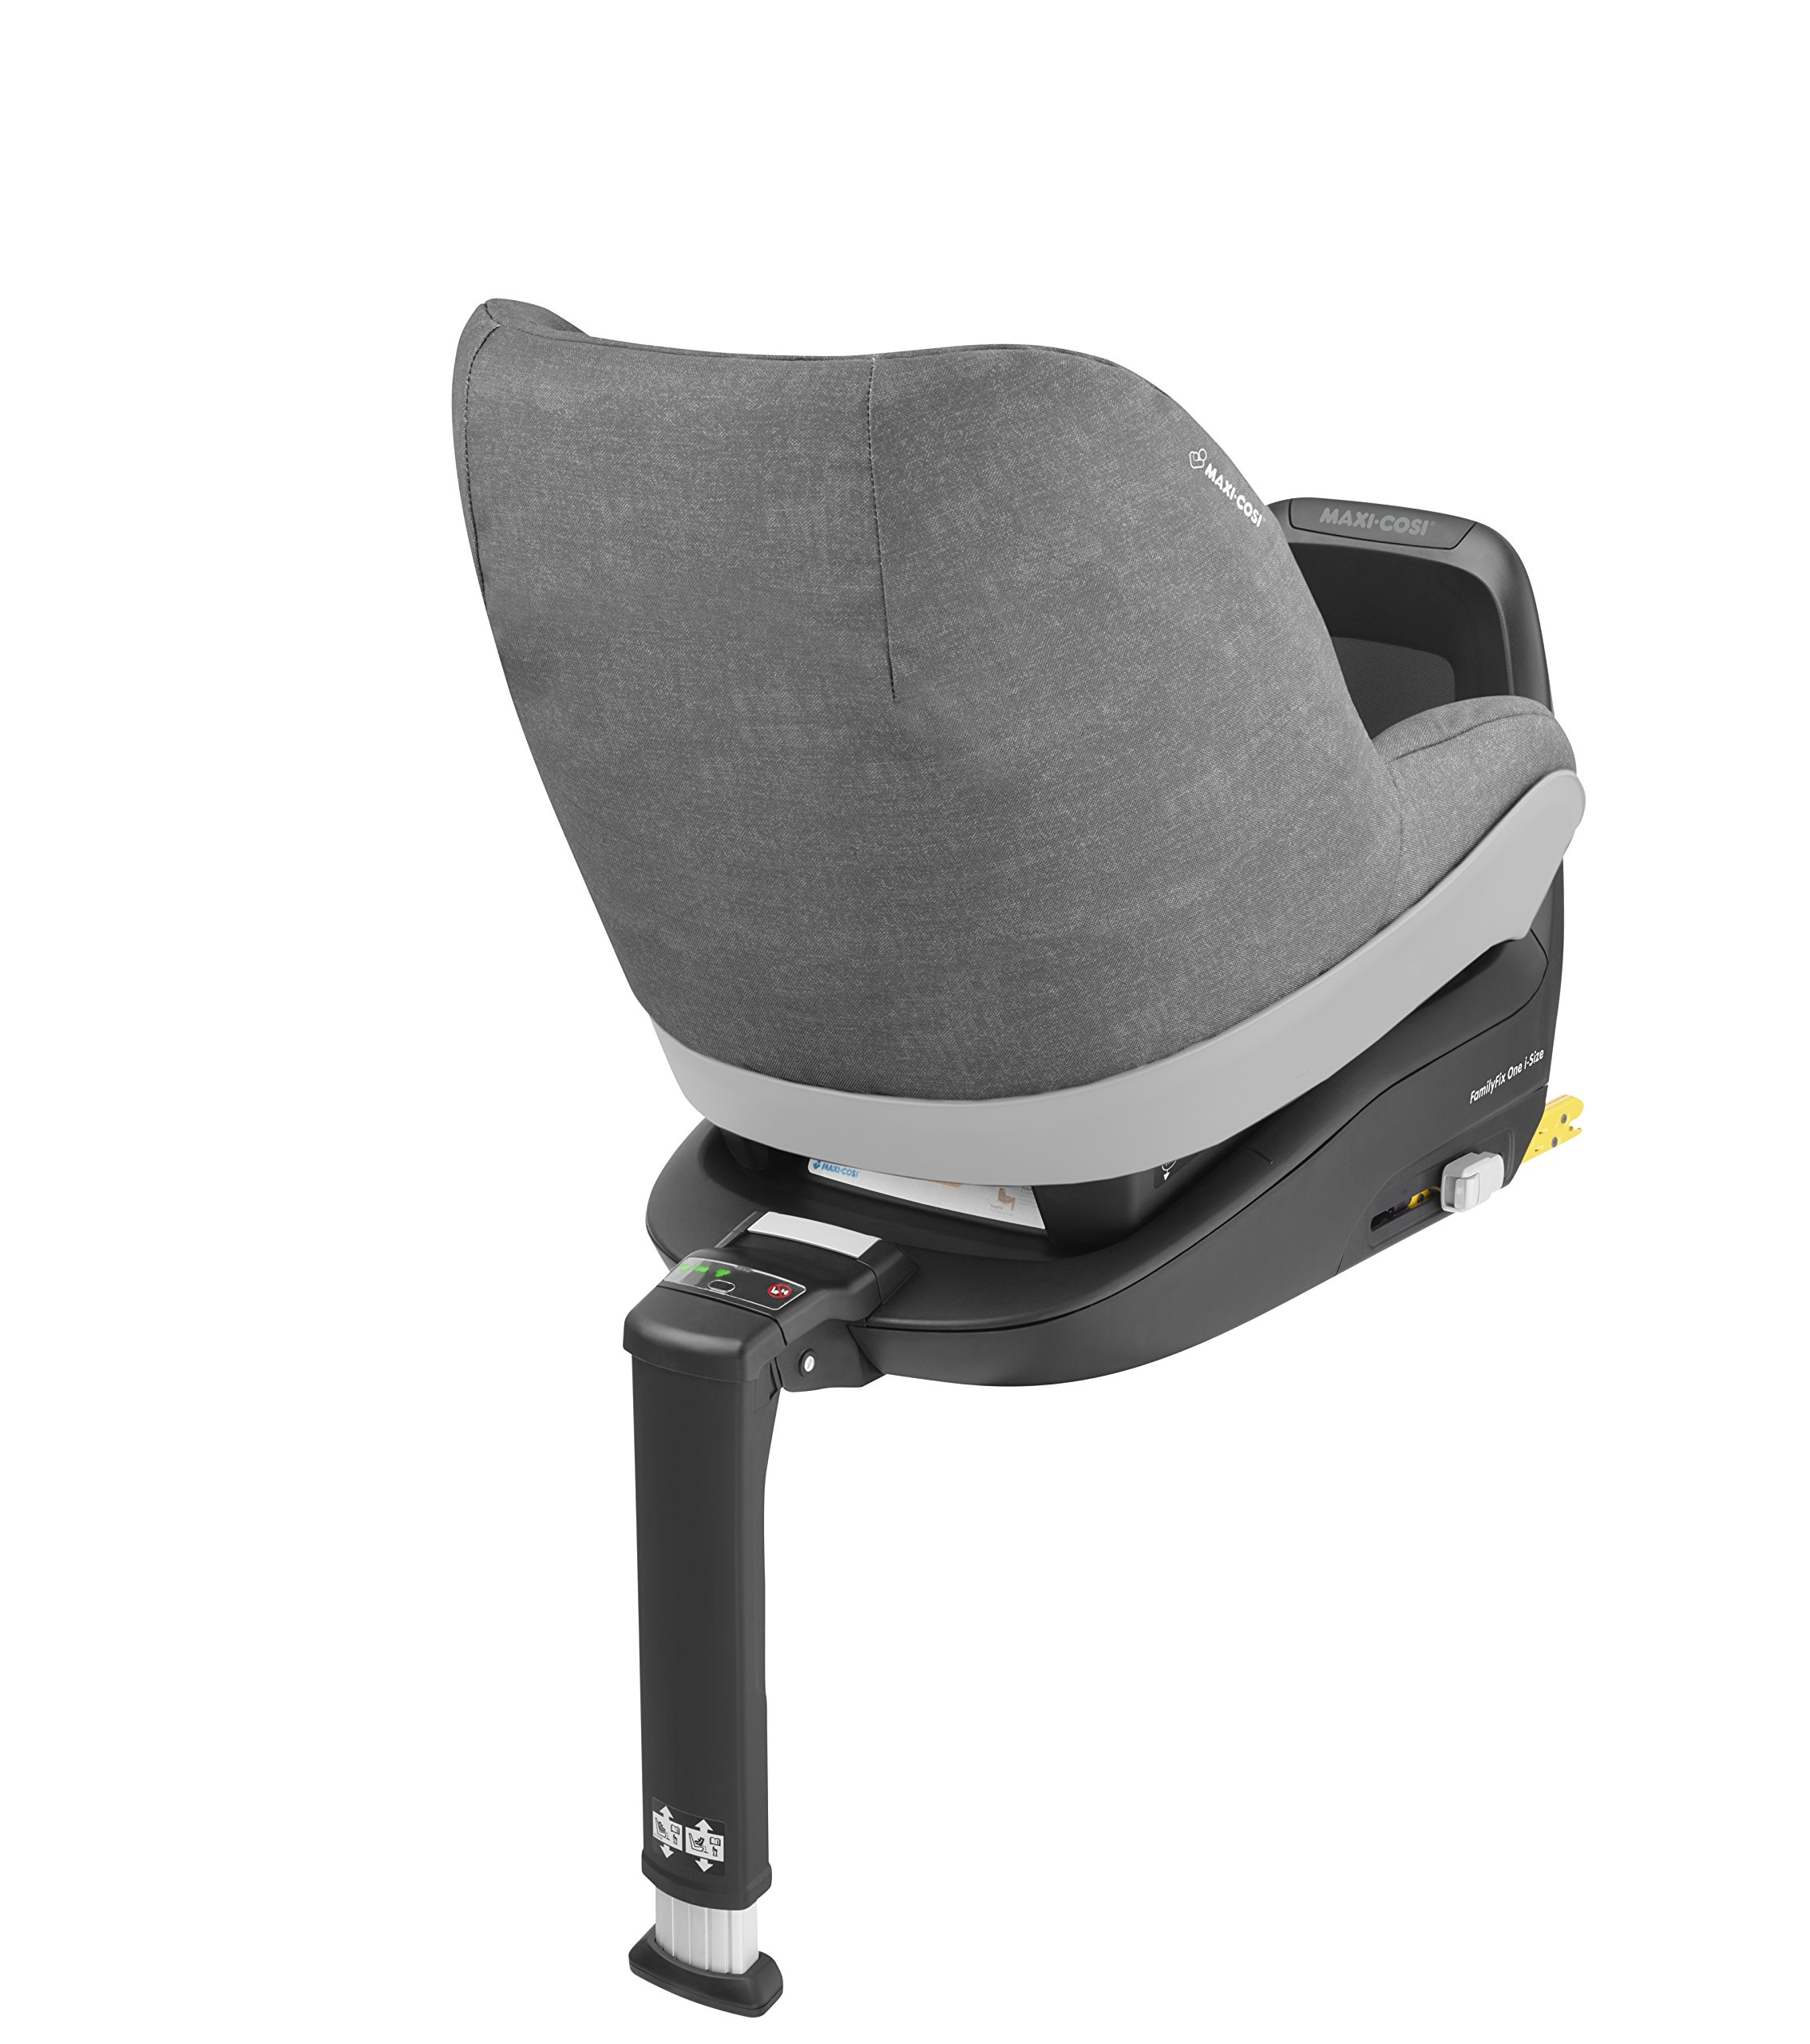 Maxi-Cosi Pearl One i-Size Toddler Car Seat Group 1, Rear-Facing Car Seat, ISOFIX, 67-105 cm, 6 Months-4 Years, Nomad Grey Maxi-Cosi Must be used with the maxi-cosi family fix one i-size base Approved according to the latest european safety standard i-size (r129) Innovative stay open harness to easily get the child in and out in seconds 5